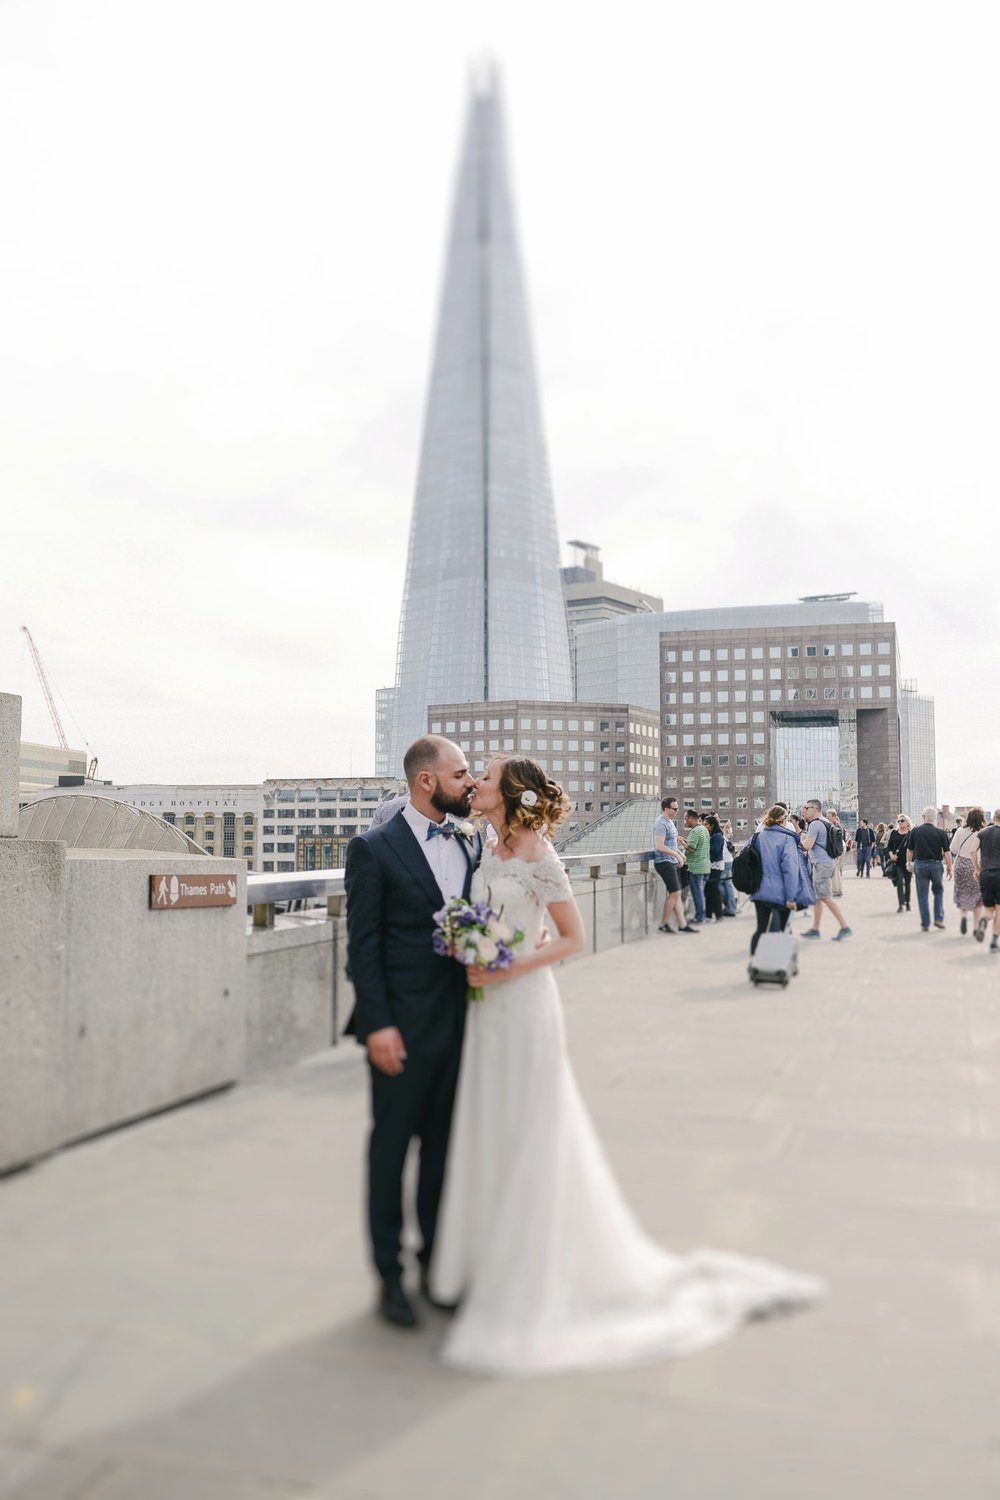 wedding-photographer-shoreditch-hoxton_0109.jpg